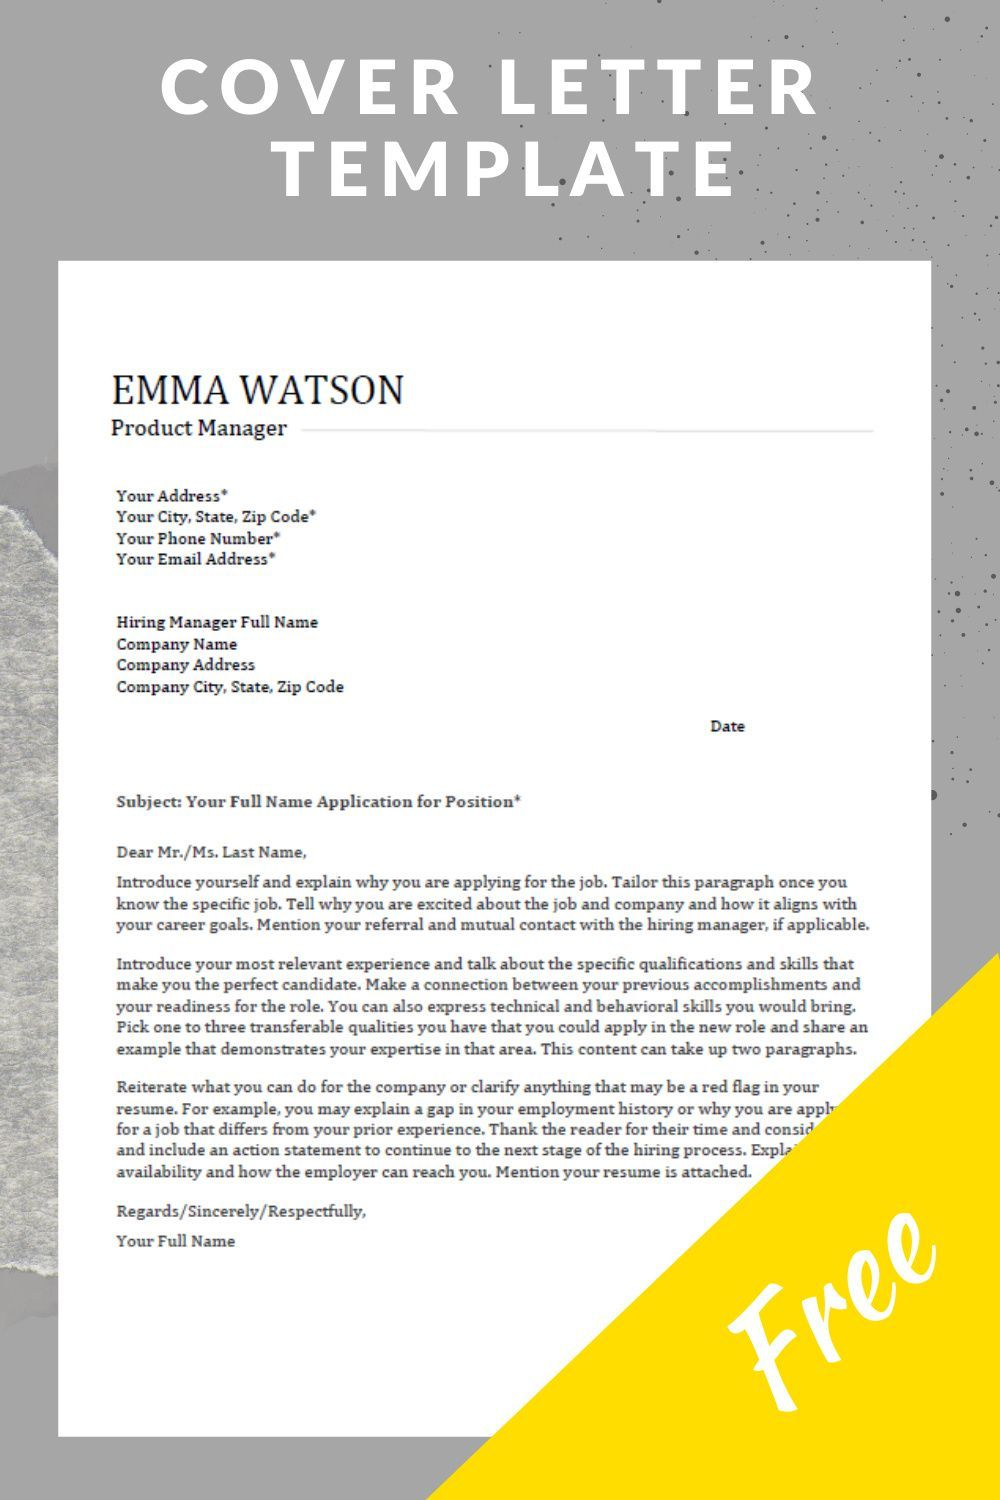 Pin On Cover Letter Template Free cover letter template download